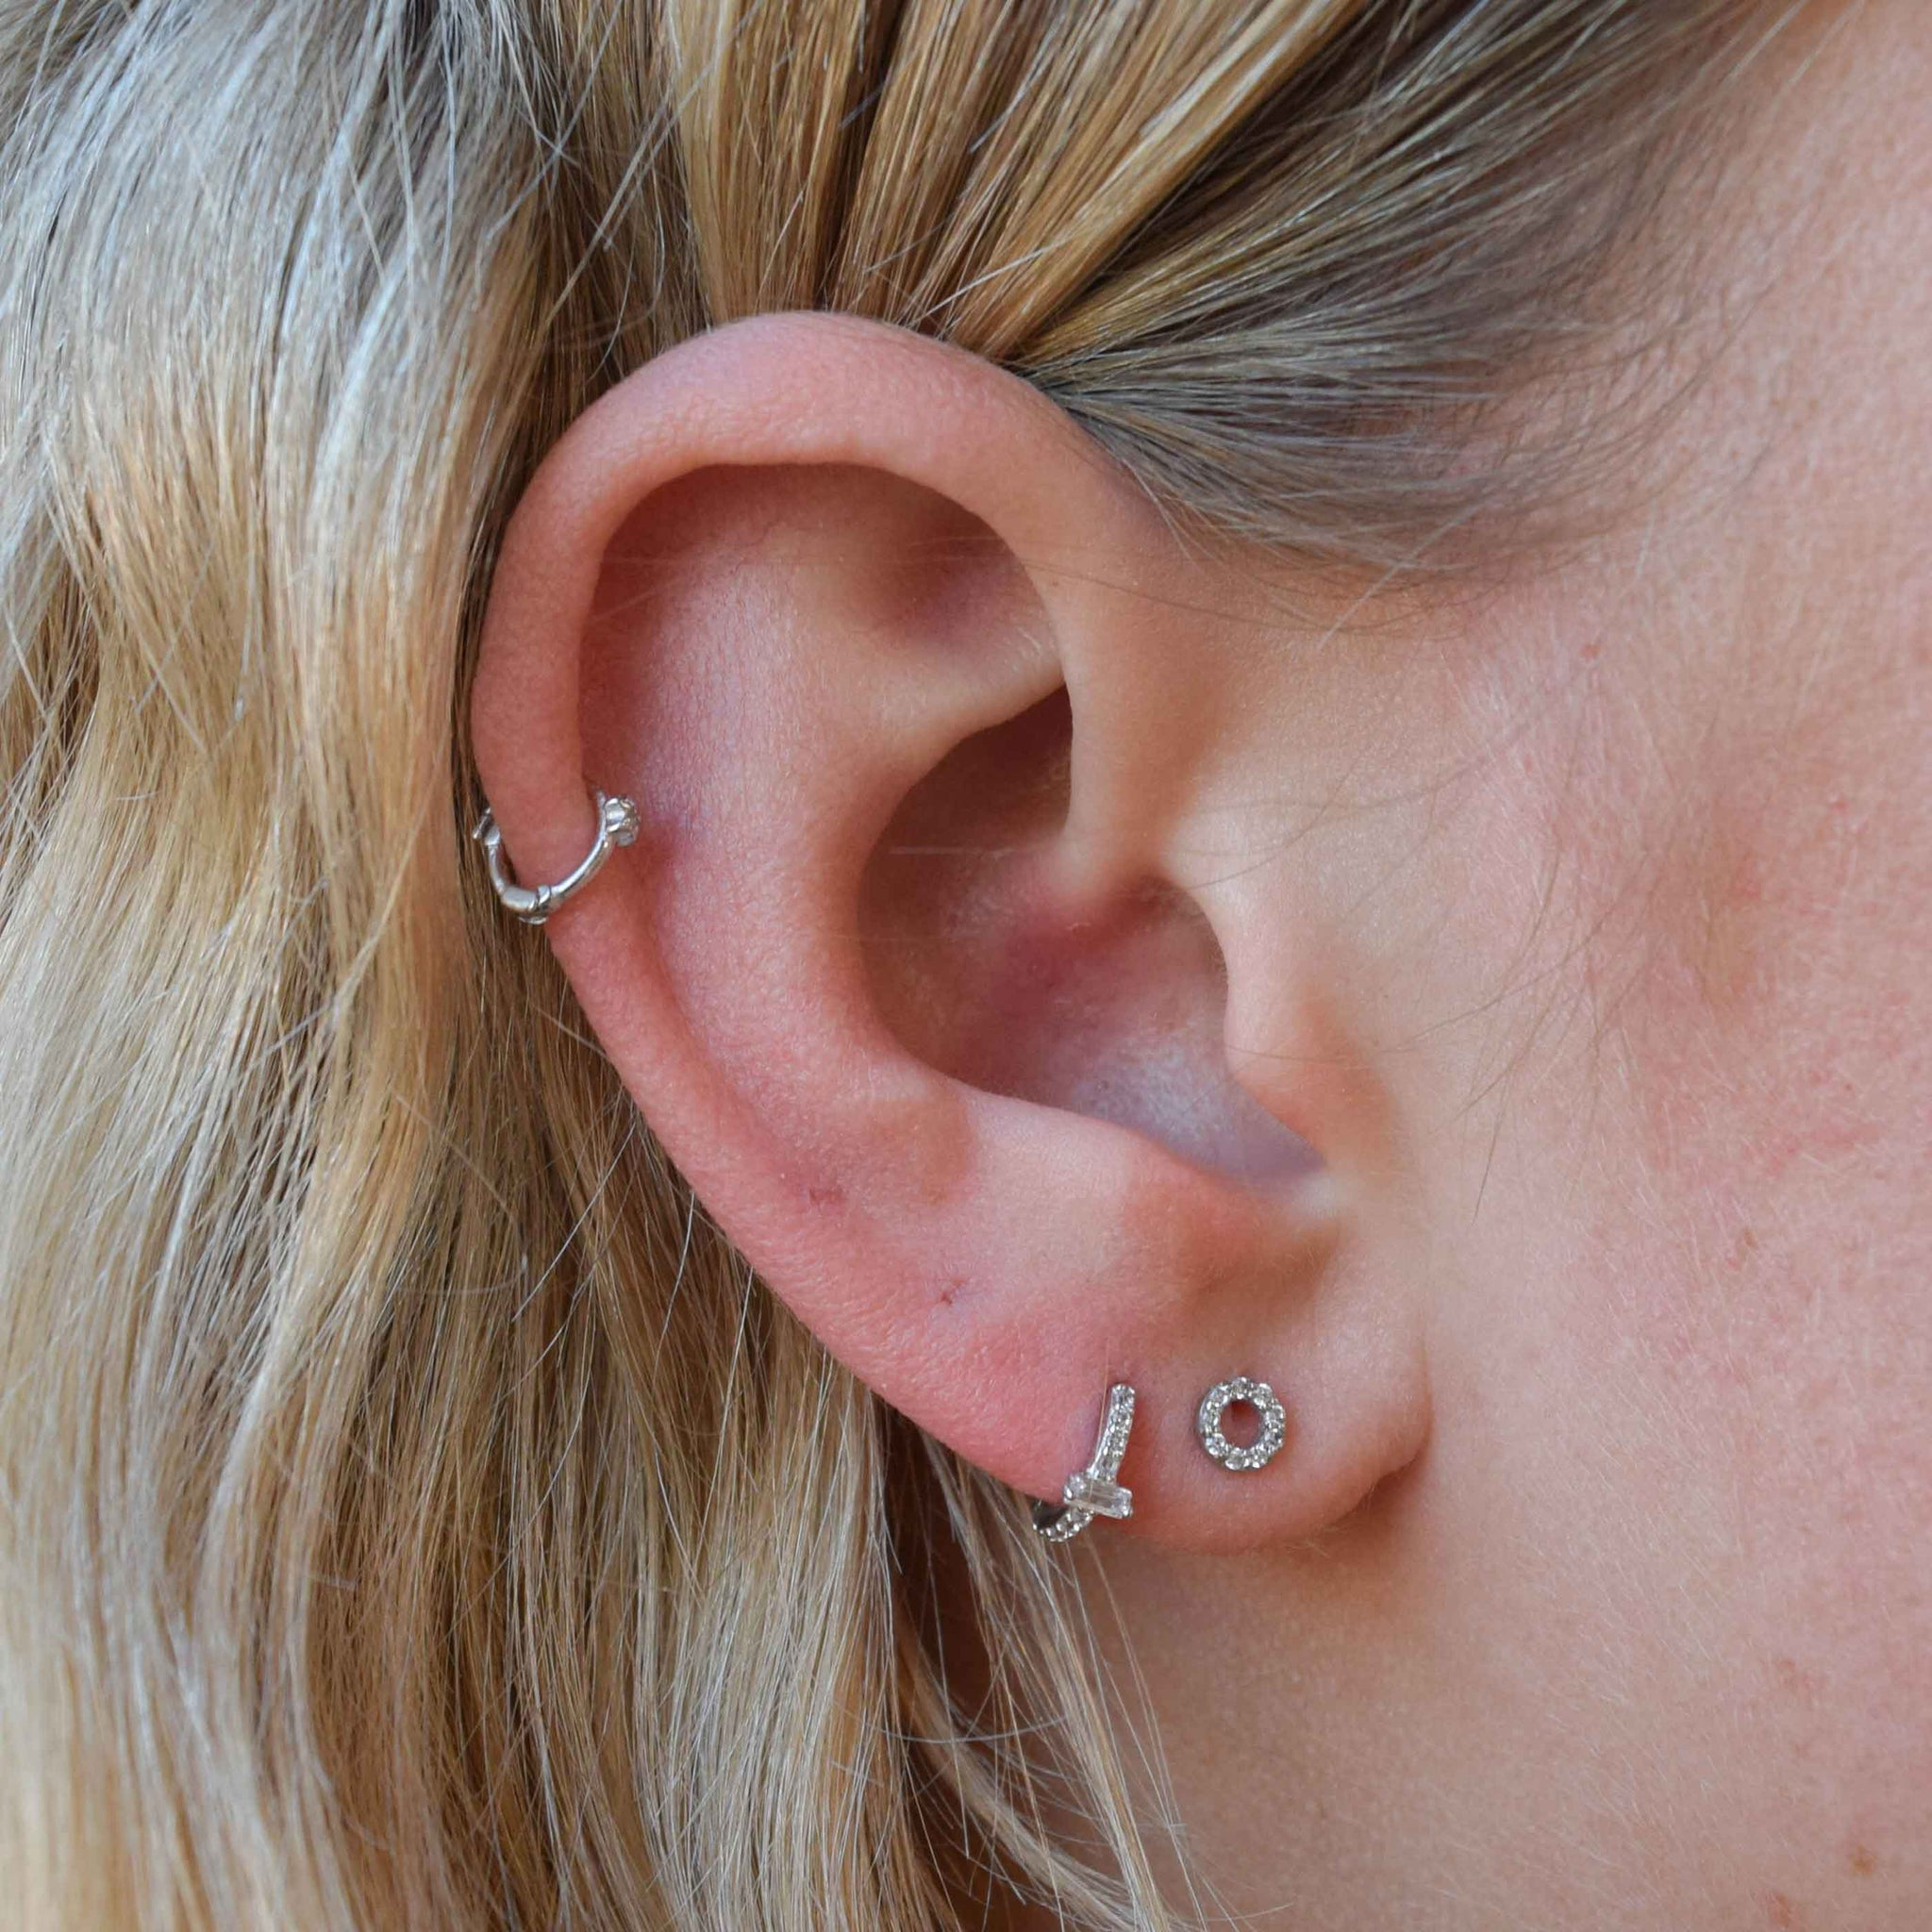 Baguette Gem Clicker in Silver worn in second lobe piercing